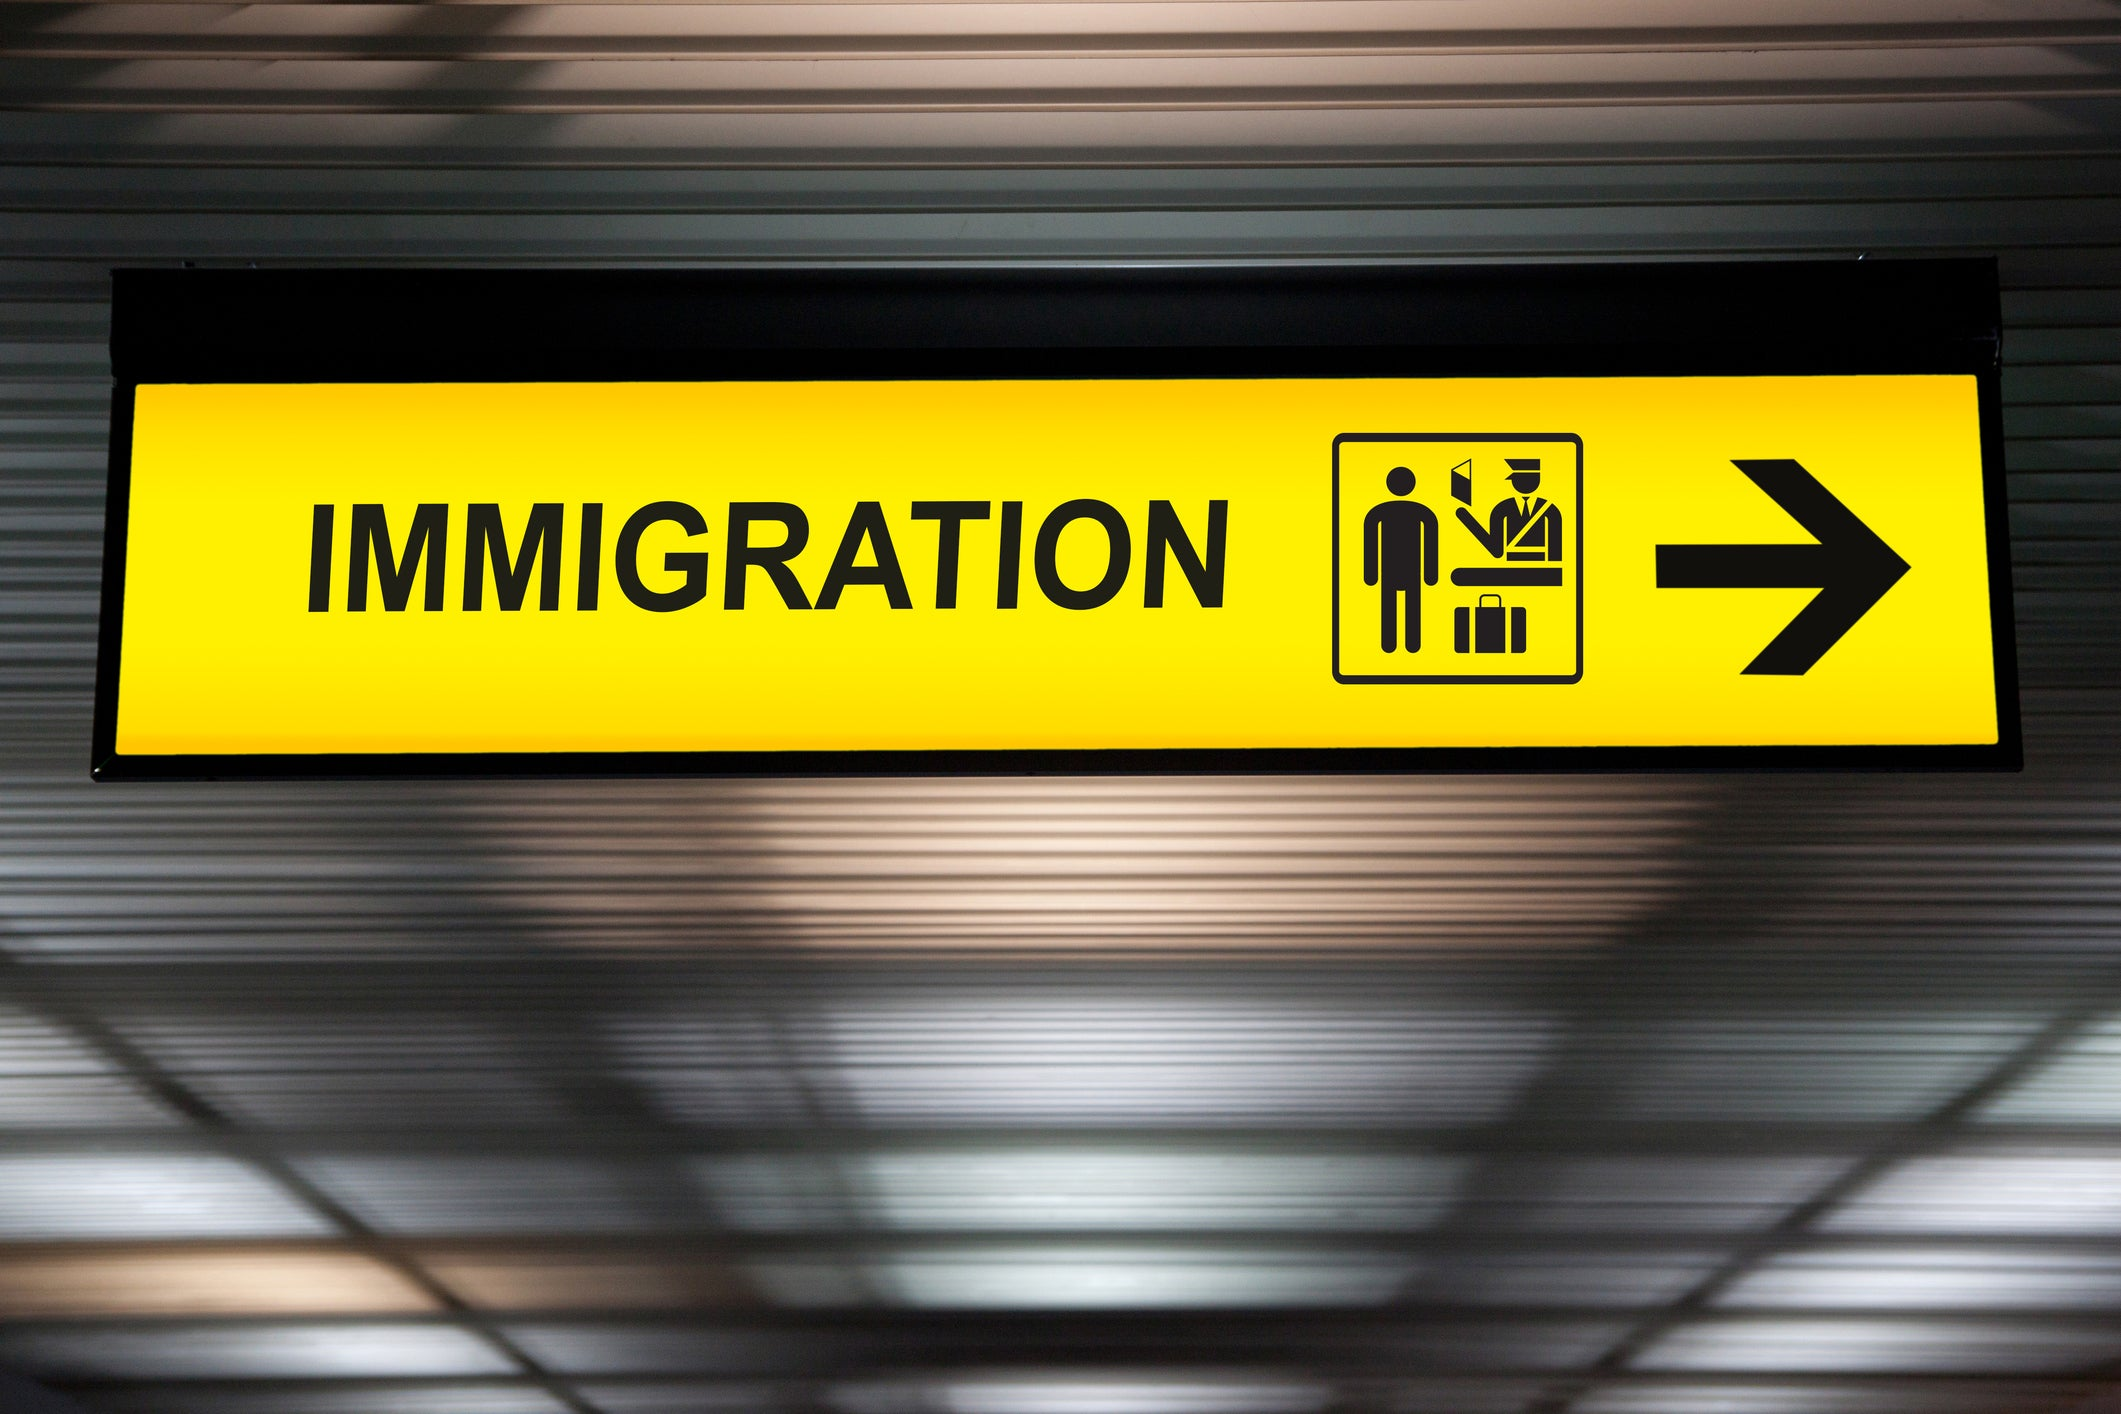 The 10 Industries With The Most Immigrant Workers The Motley Fool